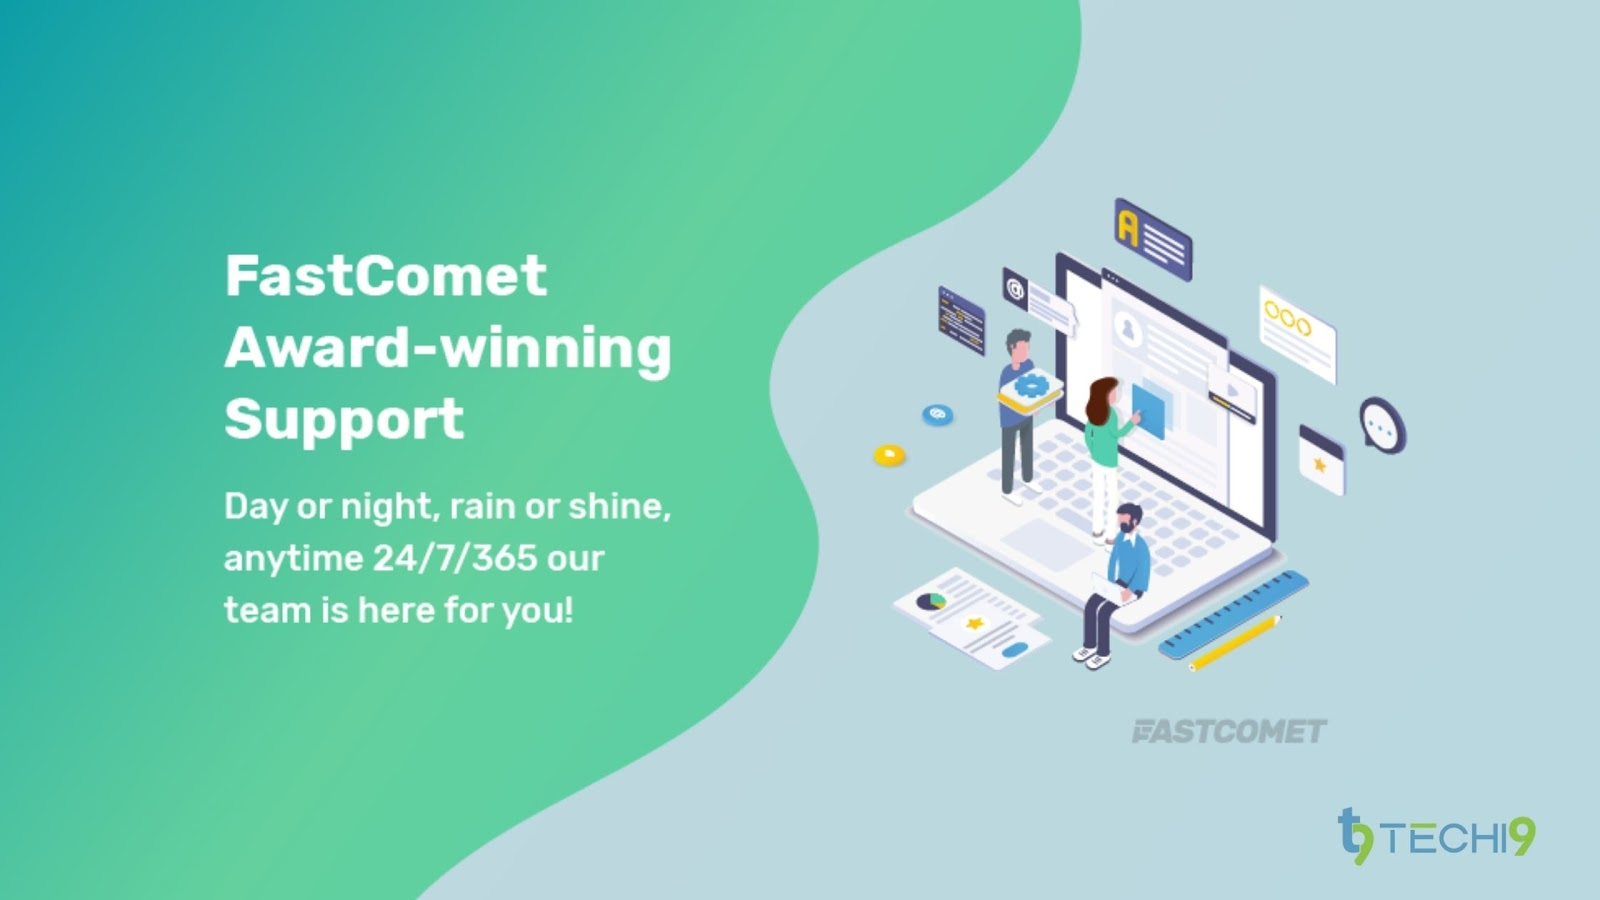 Quick and Responsive Personal Fastcomet Support